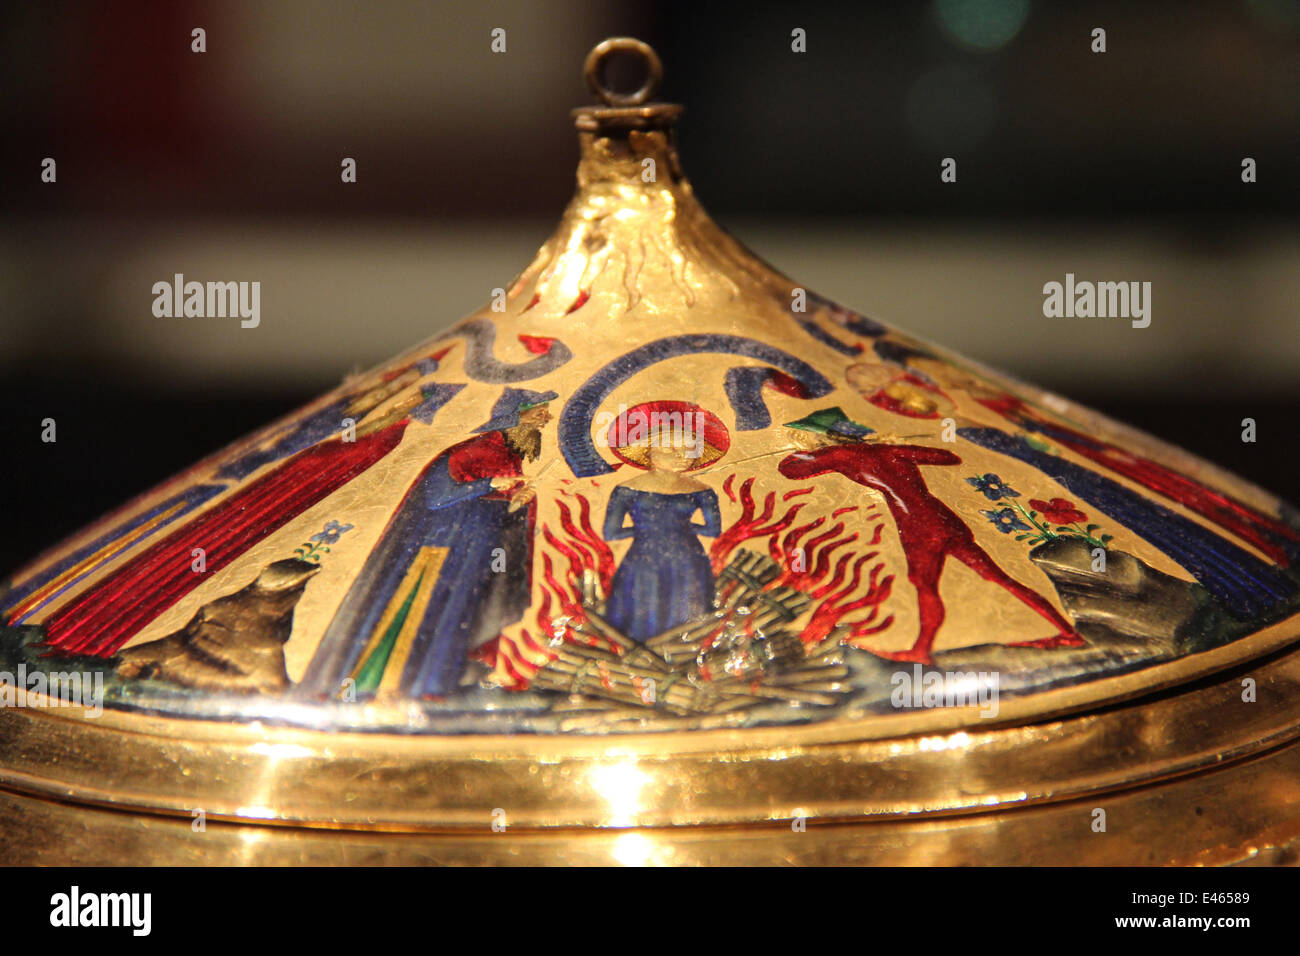 """London: """"Witch burning"""" cup at the British Museum . Photo from 09 January 2014. Stock Photo"""